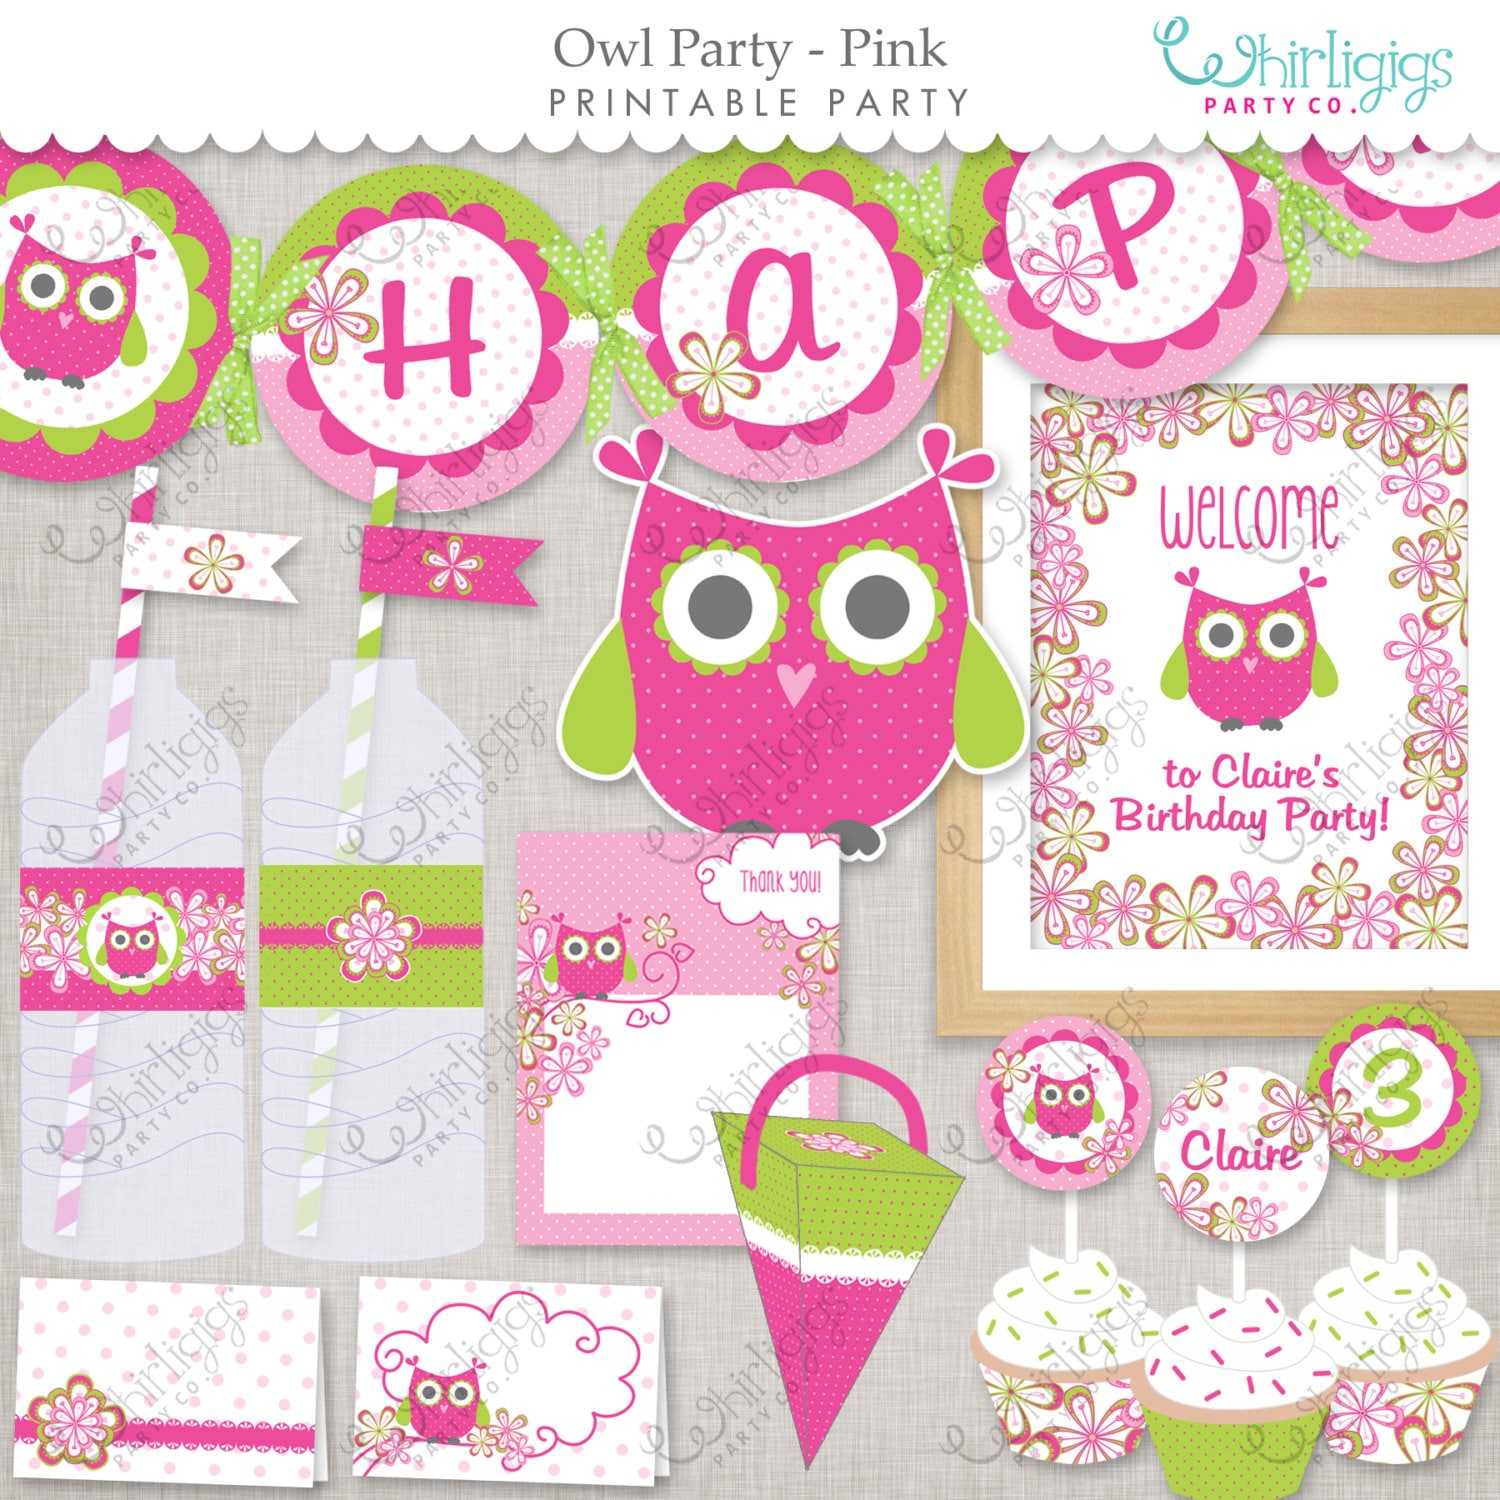 Owl Party Pink Printable Party Supplies By Whirligigspartyco